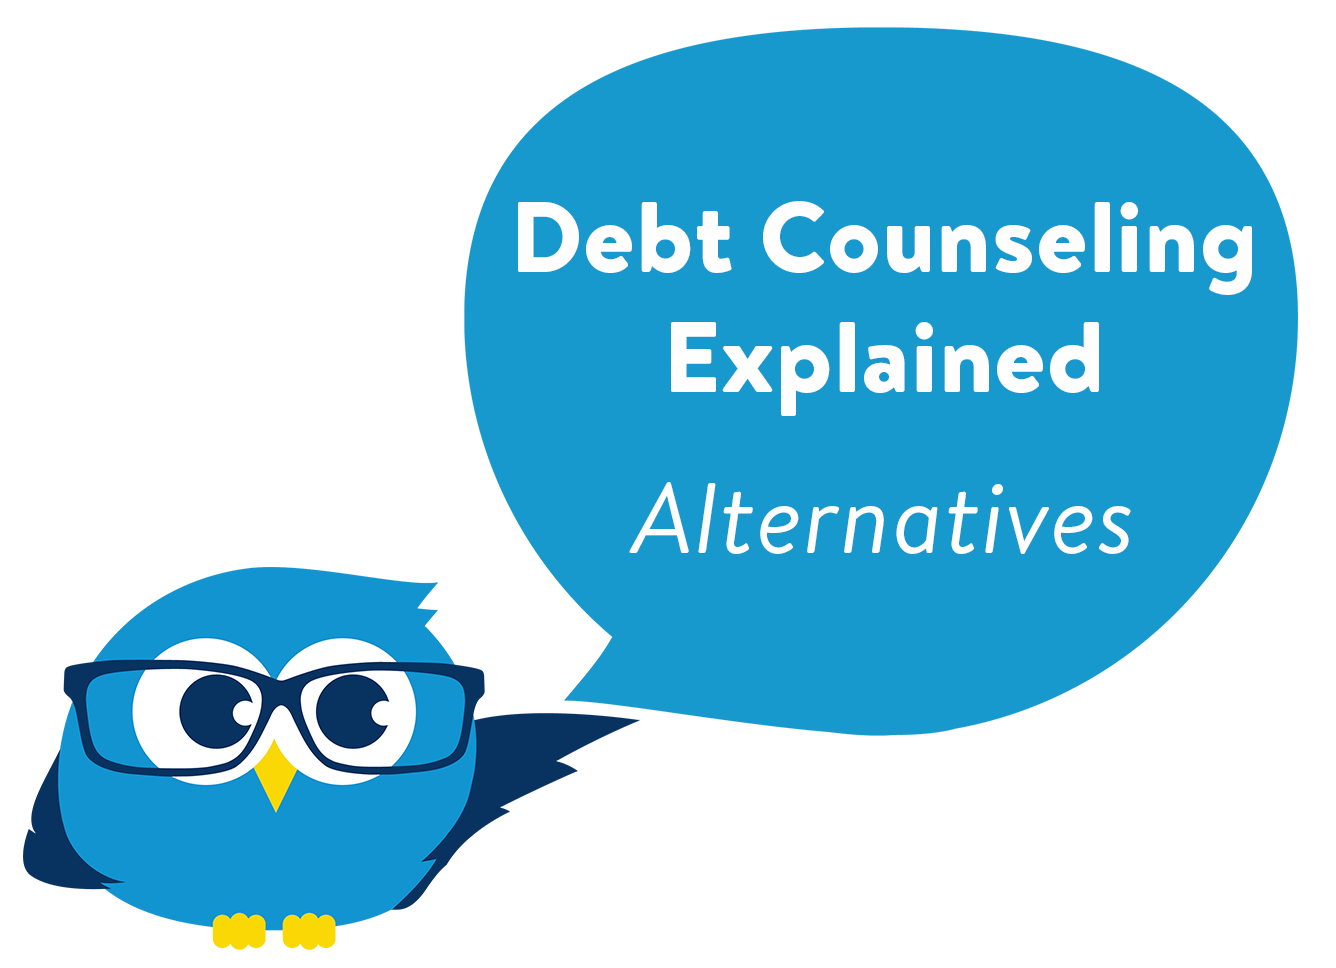 Alternatives to Debt Consolidation and Counseling